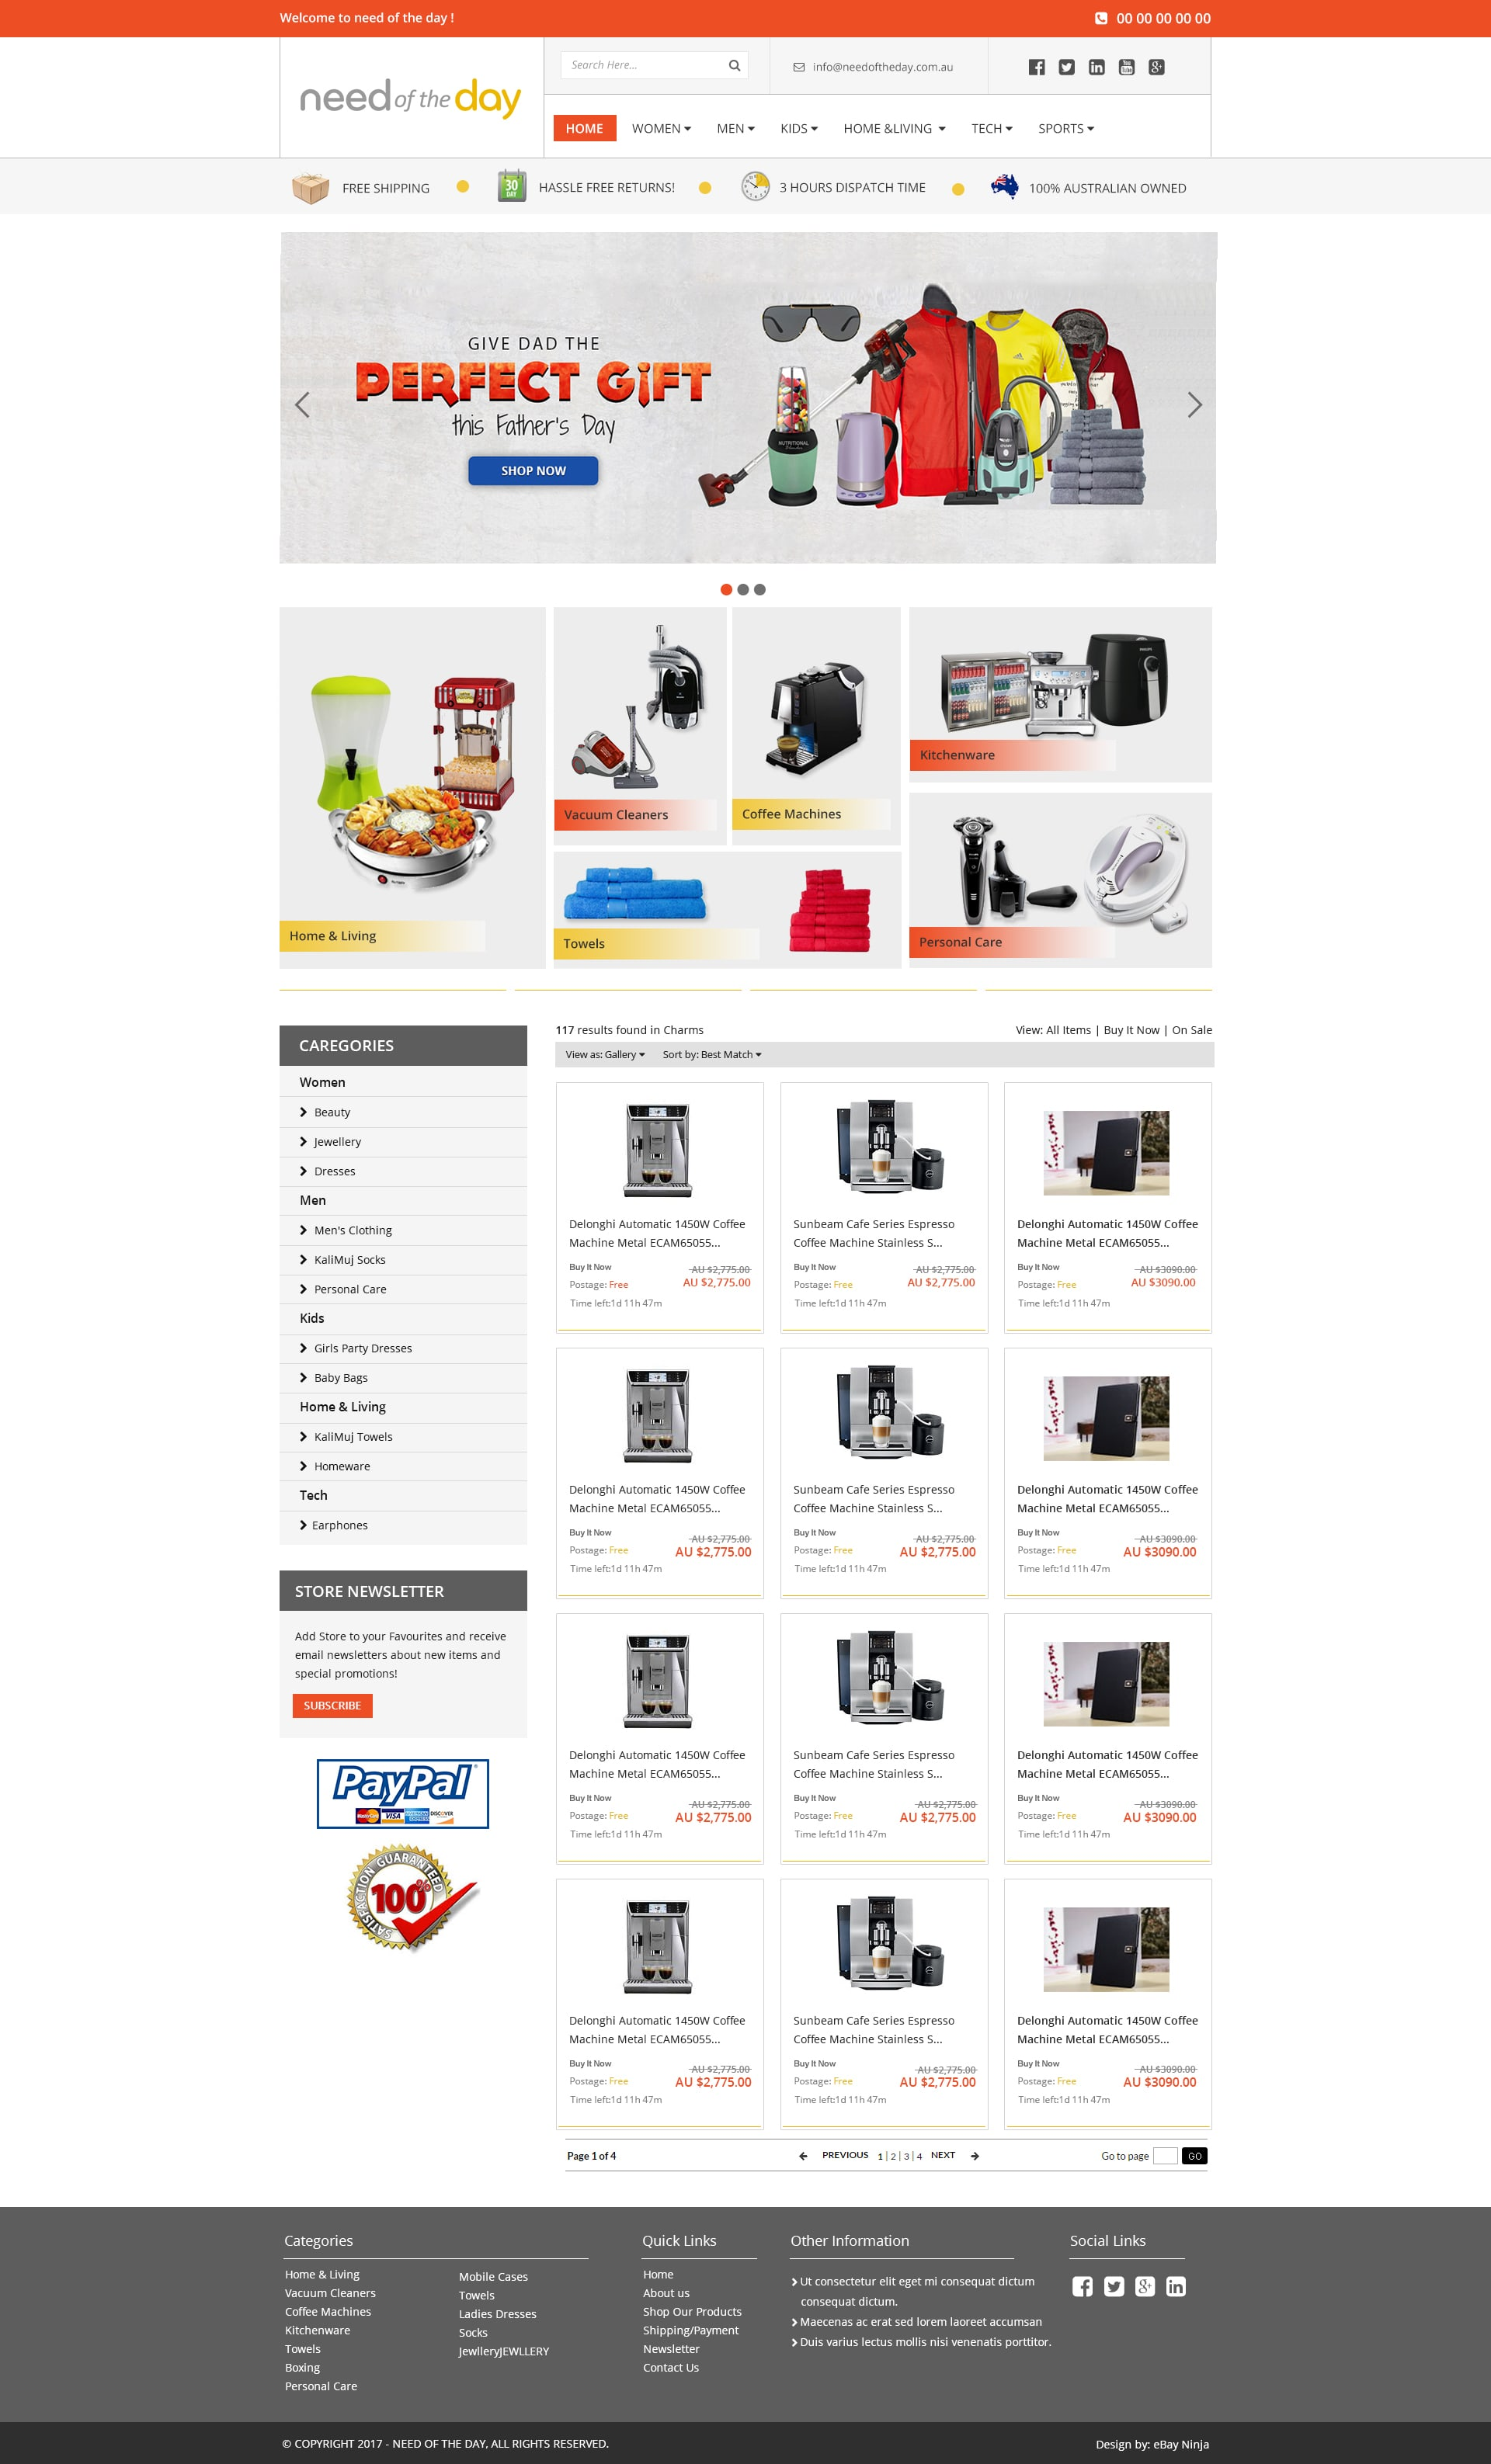 Needoftheday.com.au – Redesigning eBay Storefront and Product Template for Better Branding and Sales